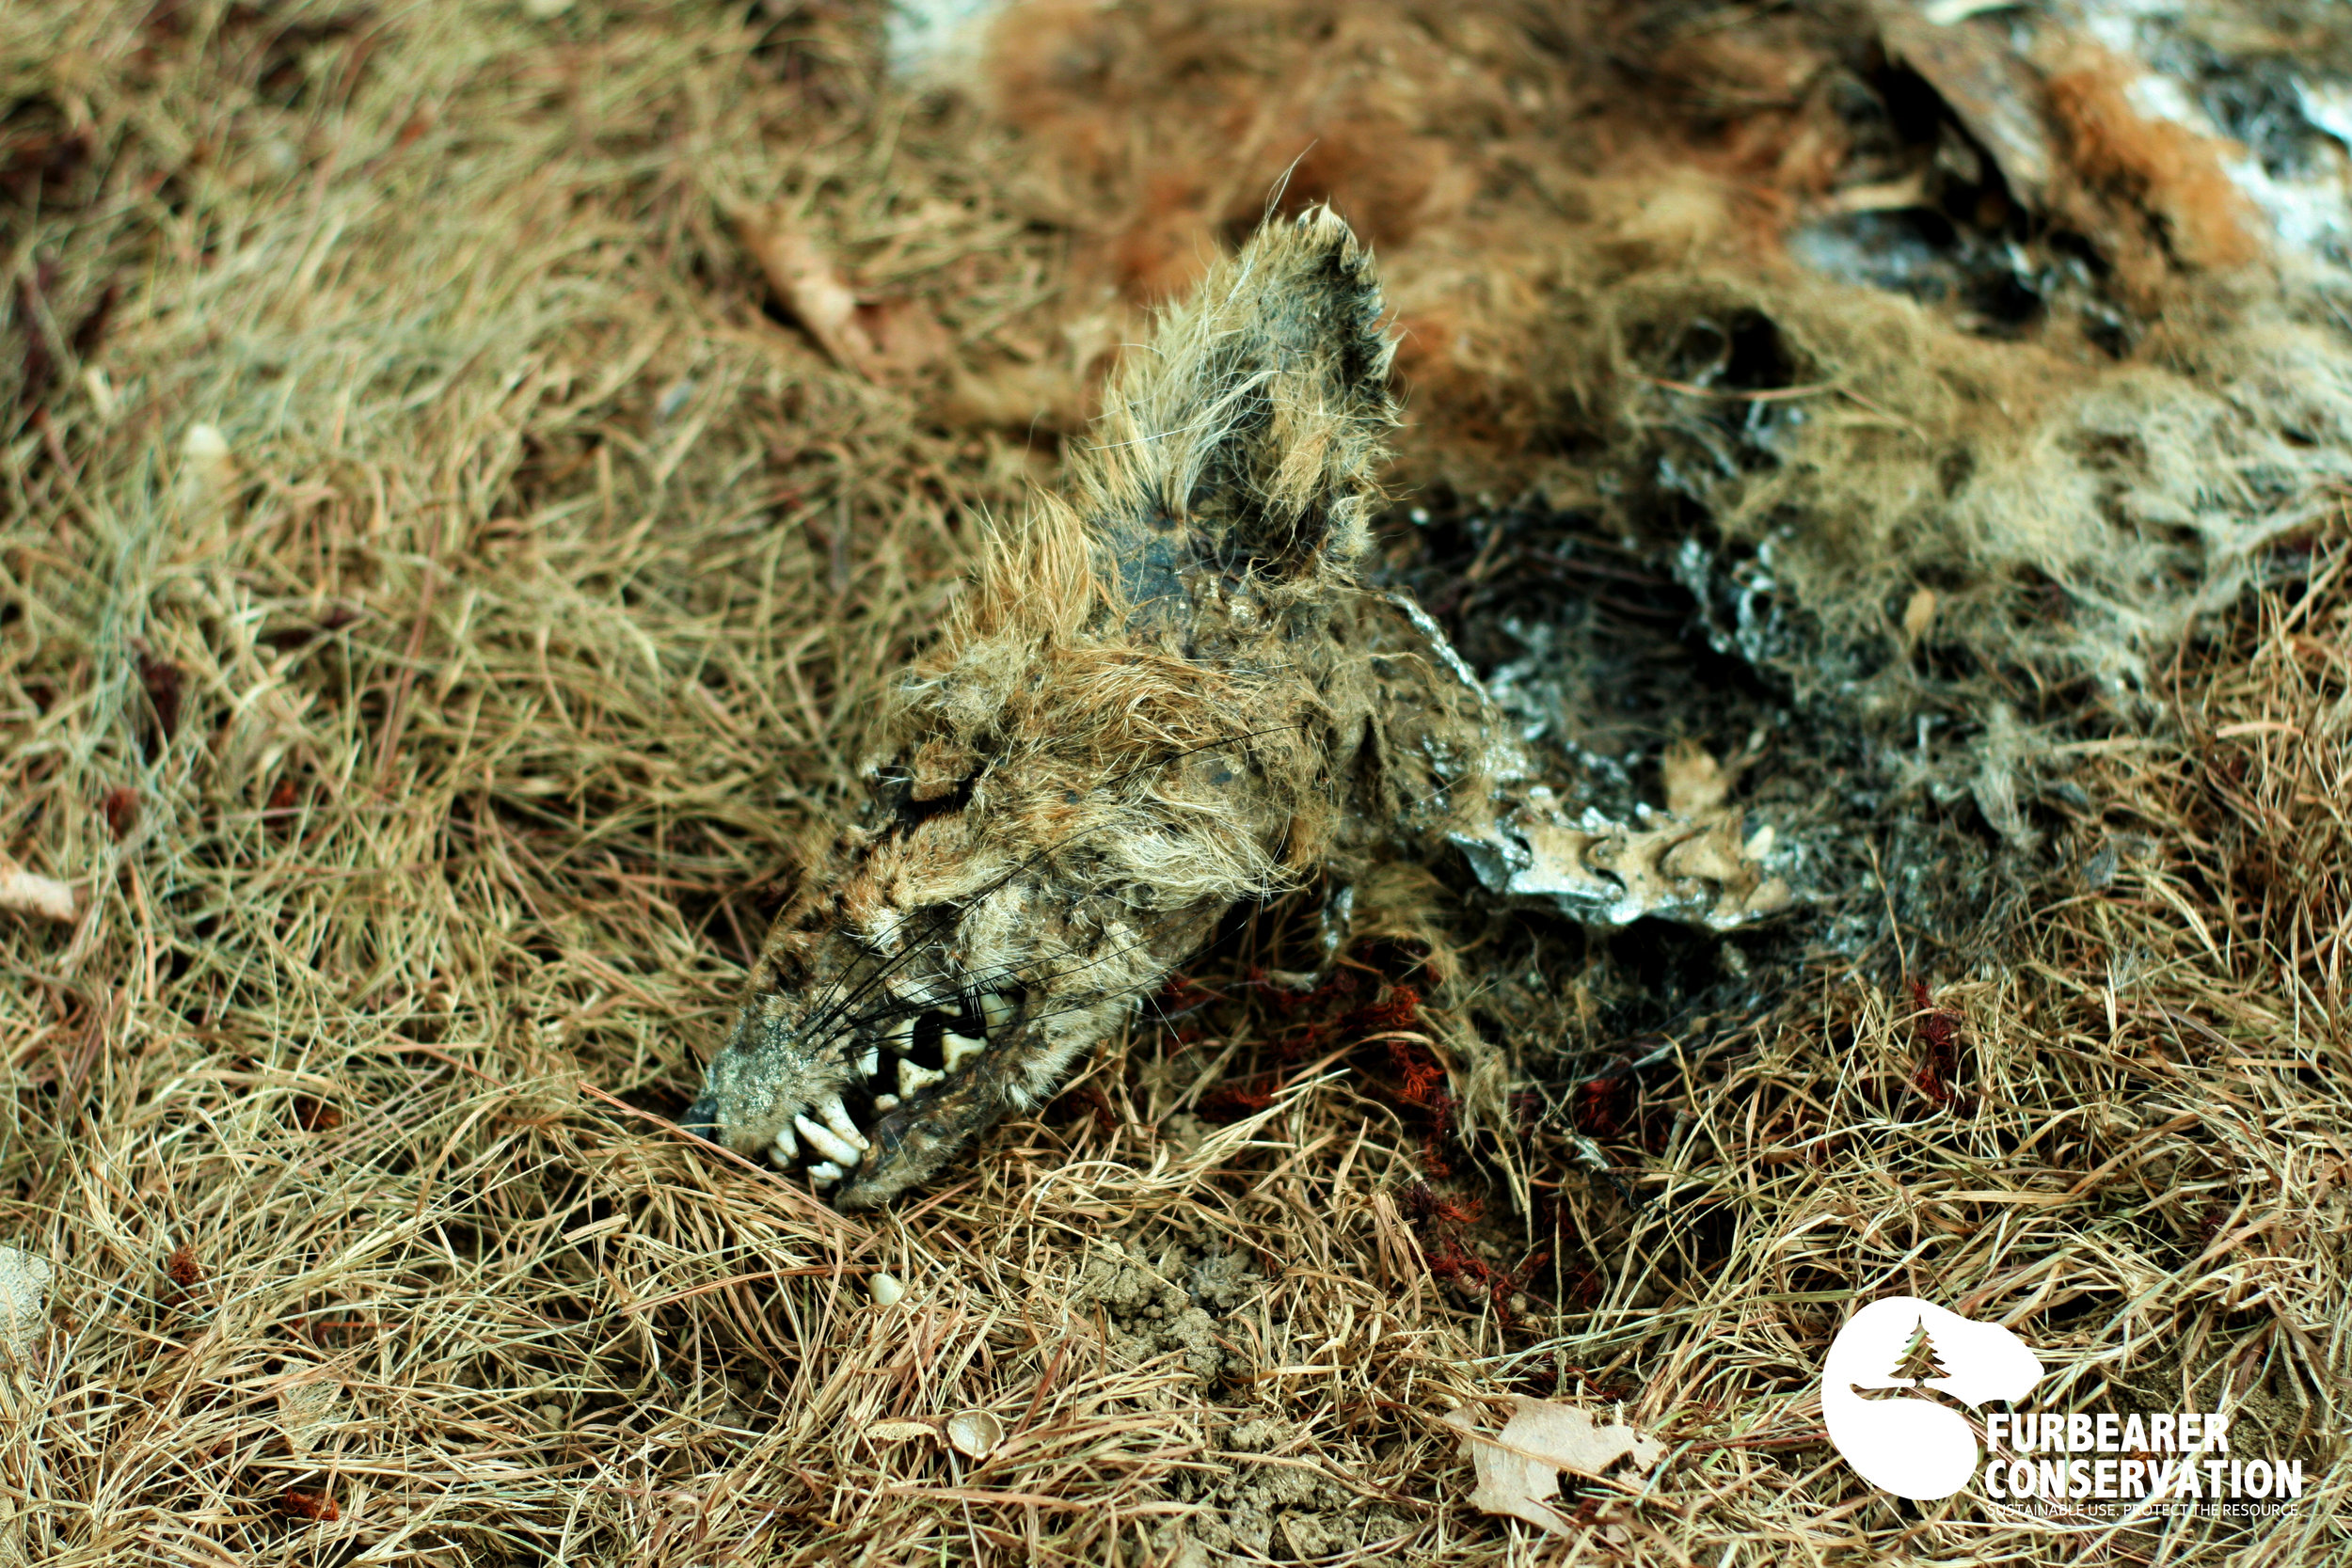 One of two fox kit carcasses believed to have succumed to a disease-related death.